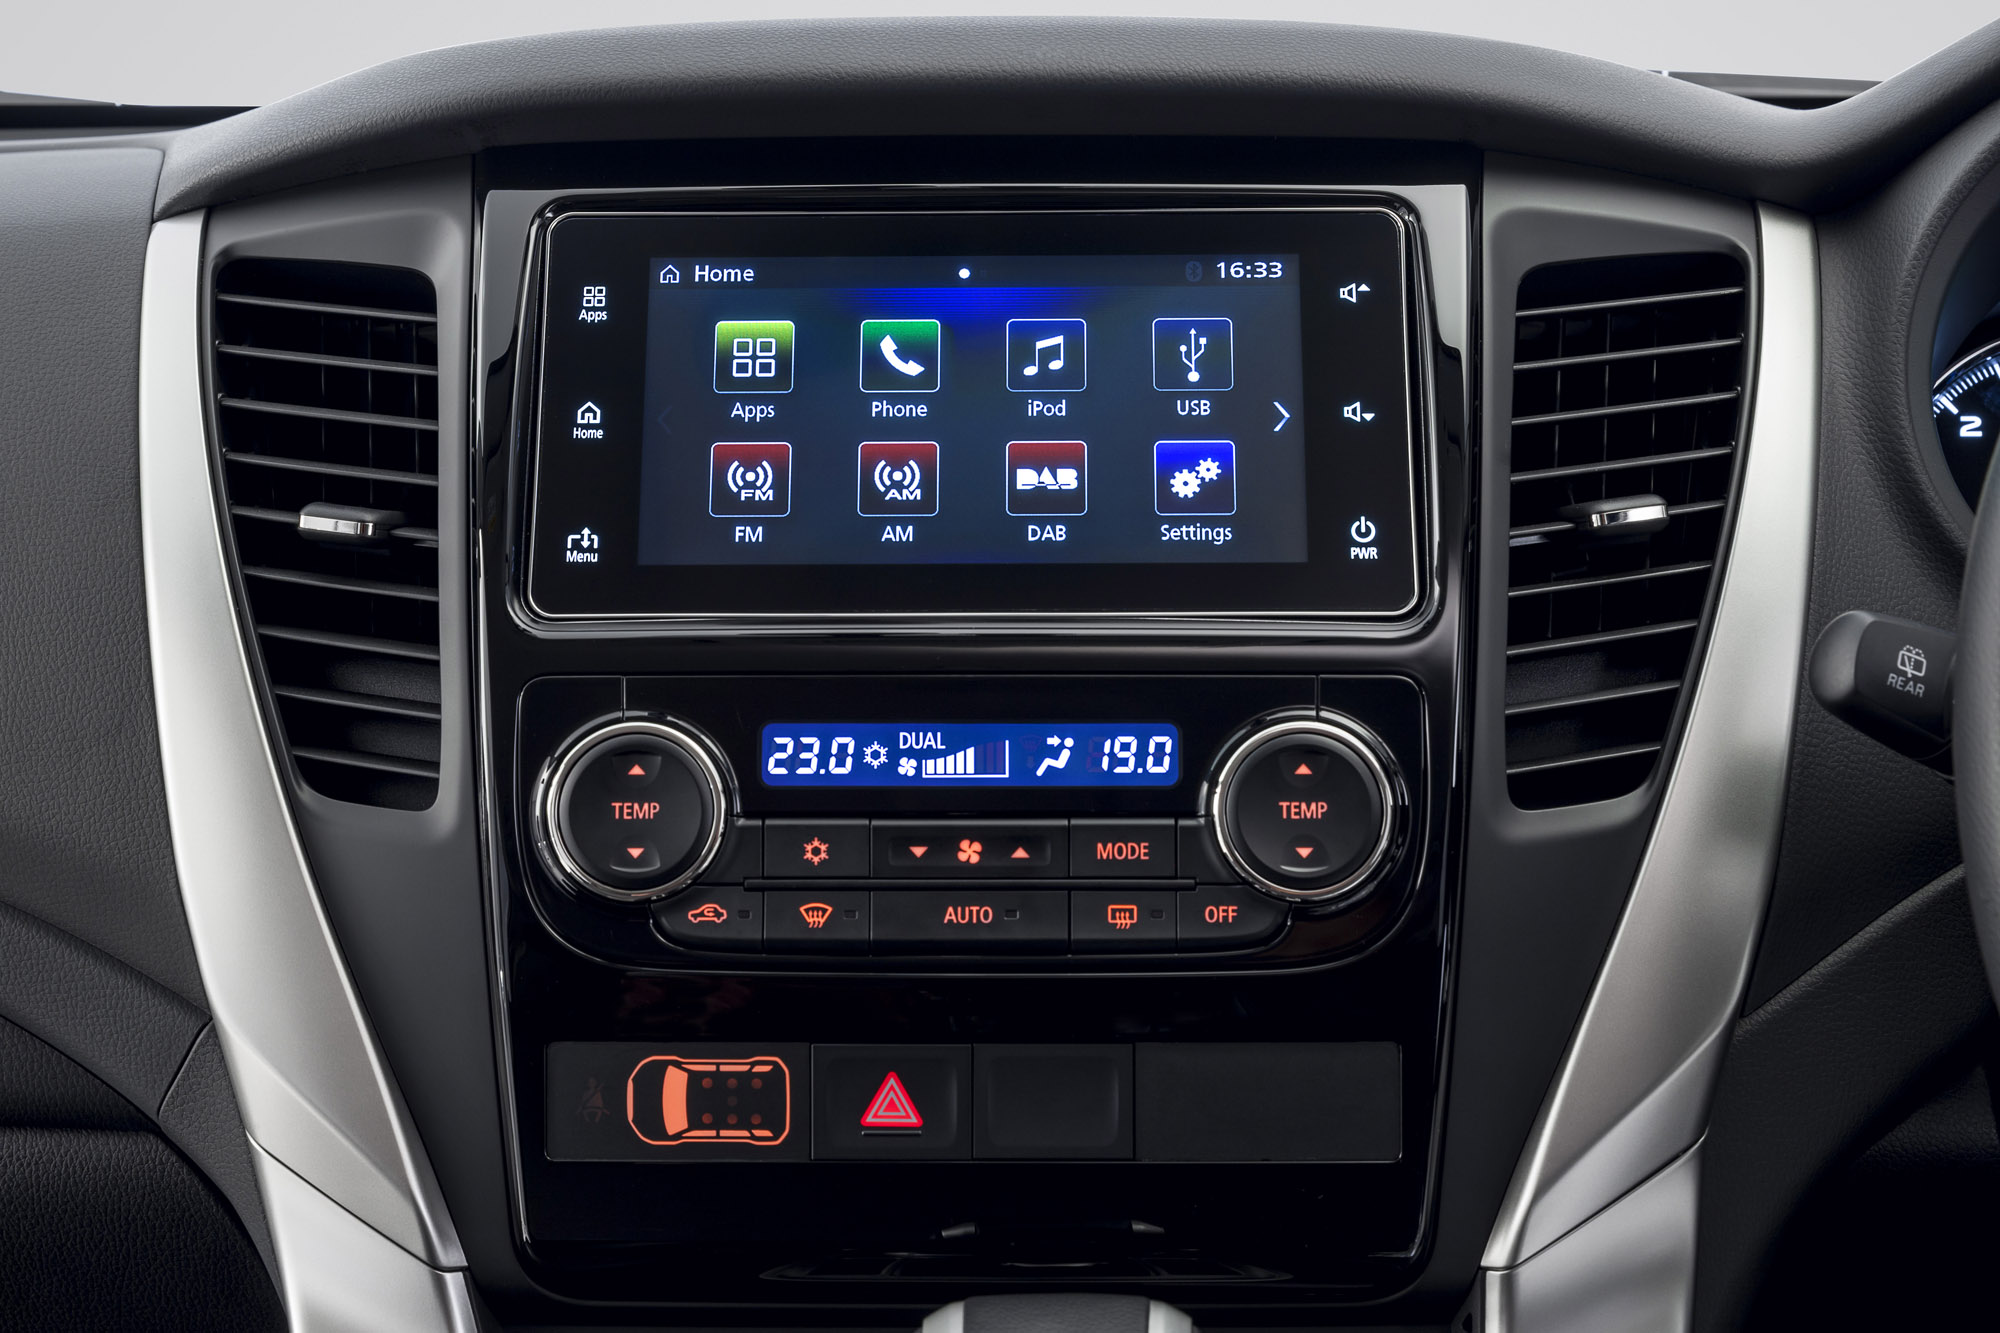 2016 Mitsubishi Pajero Sport Head Unit (Photo 8 of 23)